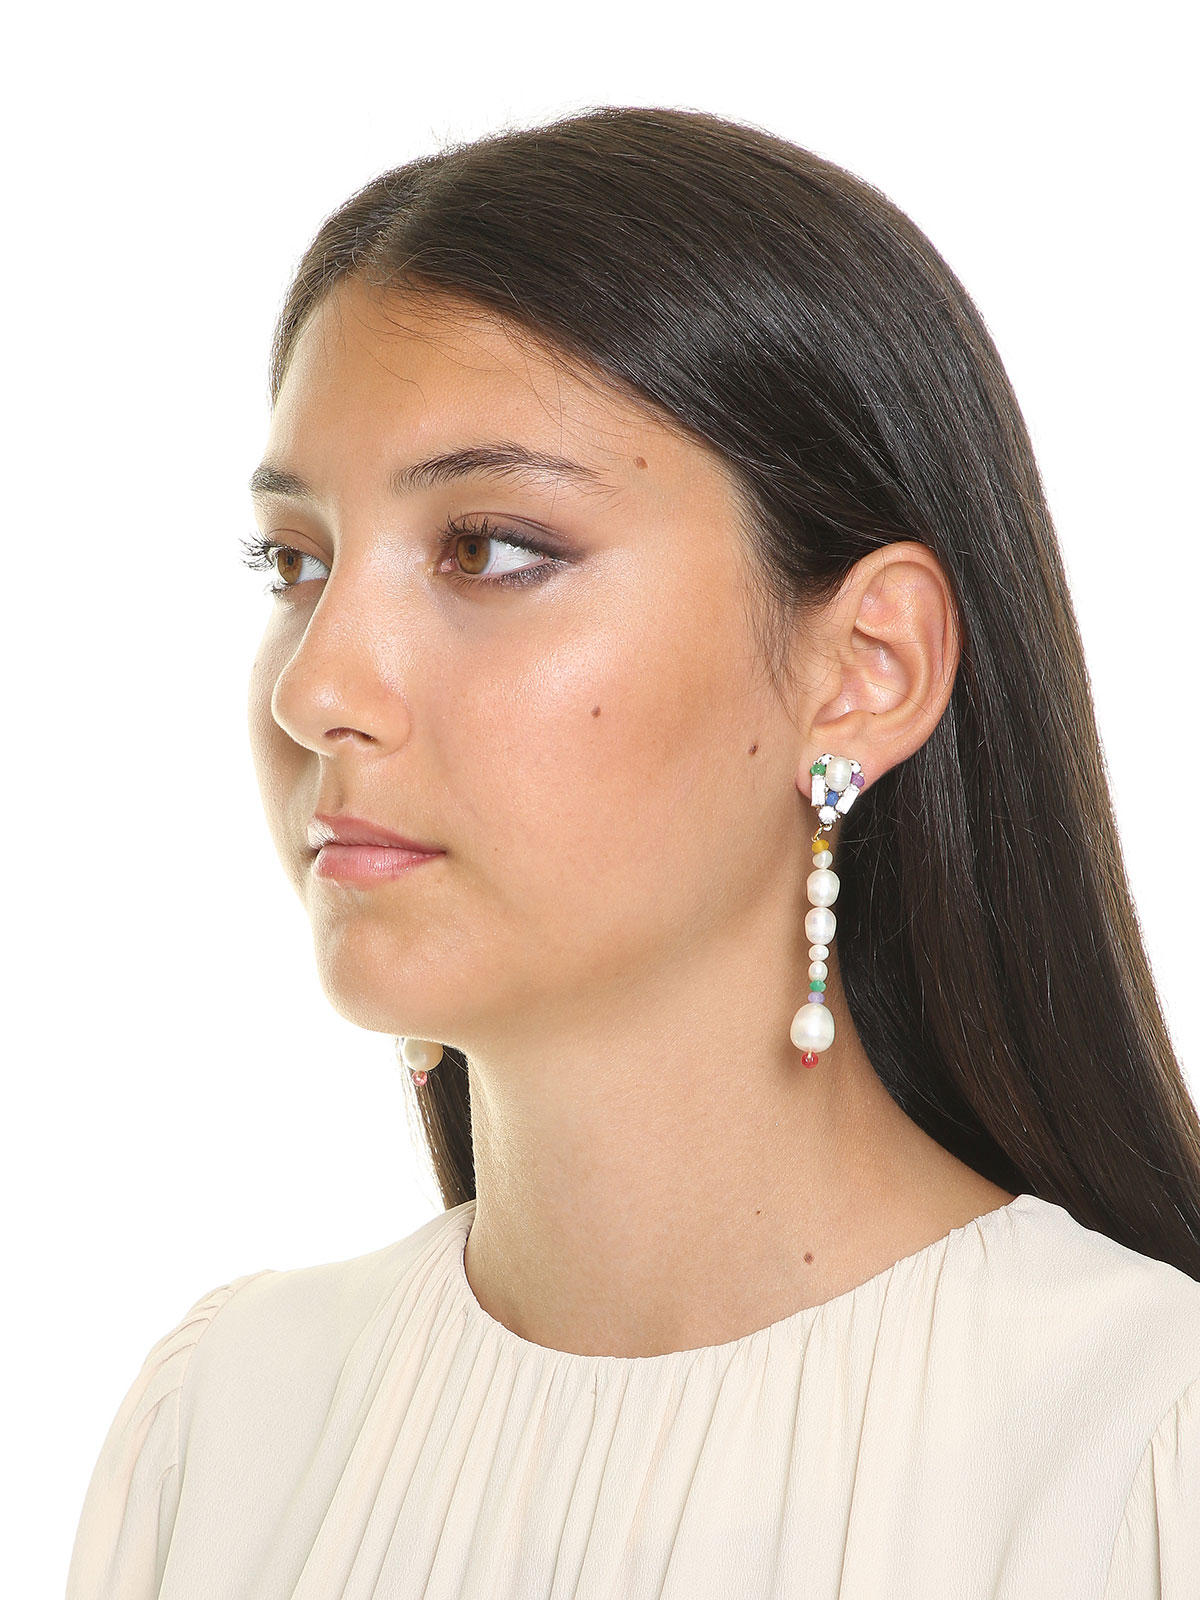 Jade earrings and freshwater pearls